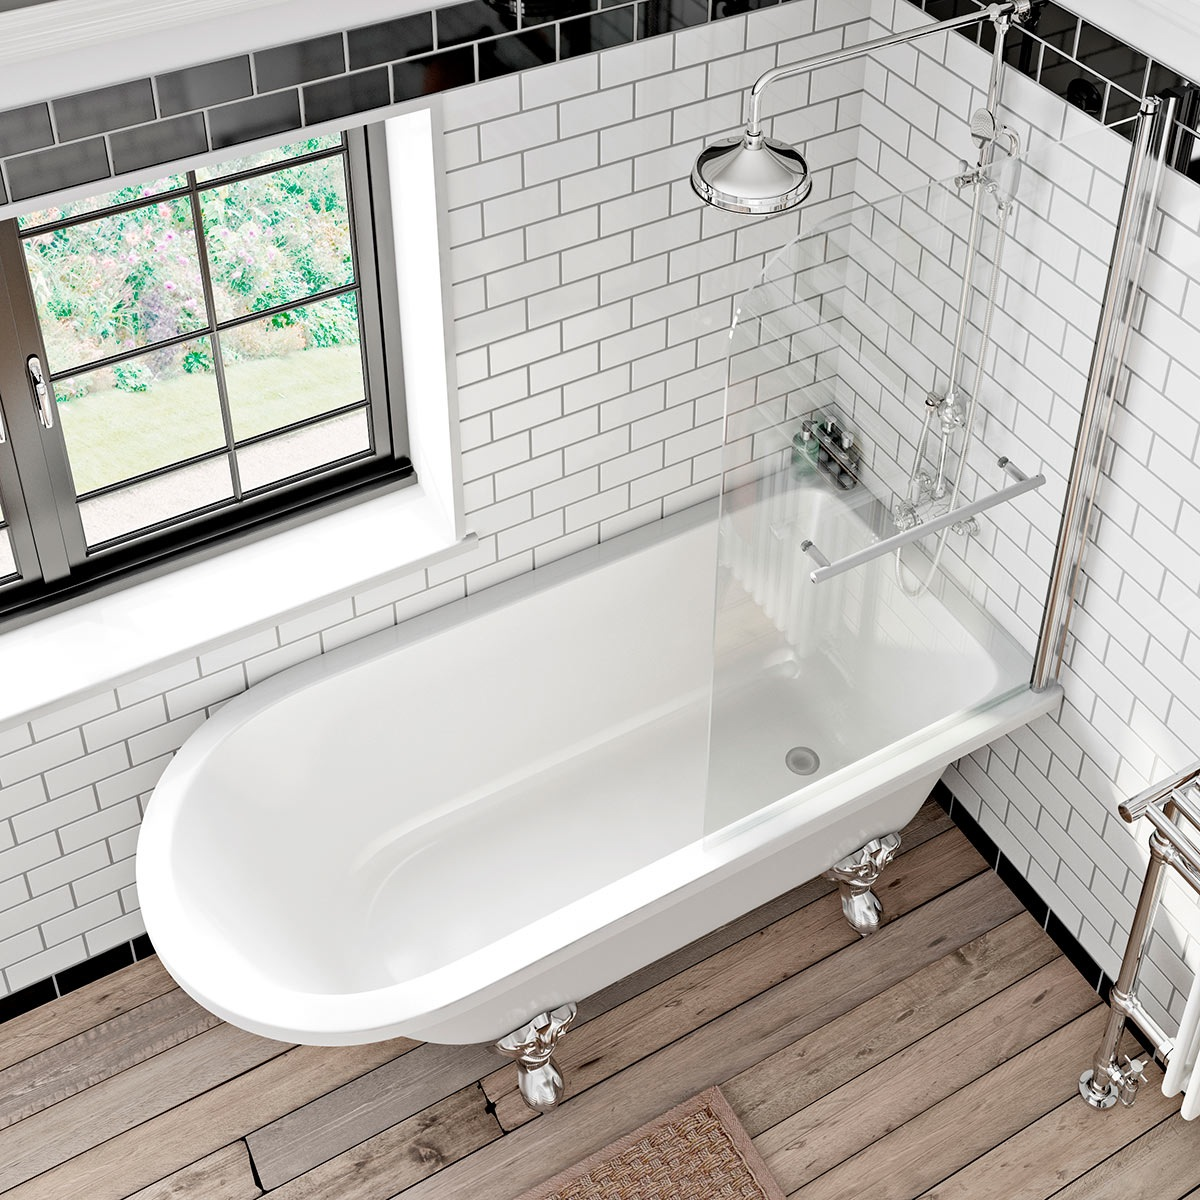 Introducing the new sally and shakespeare baths Bathroom designs with separate tub and shower